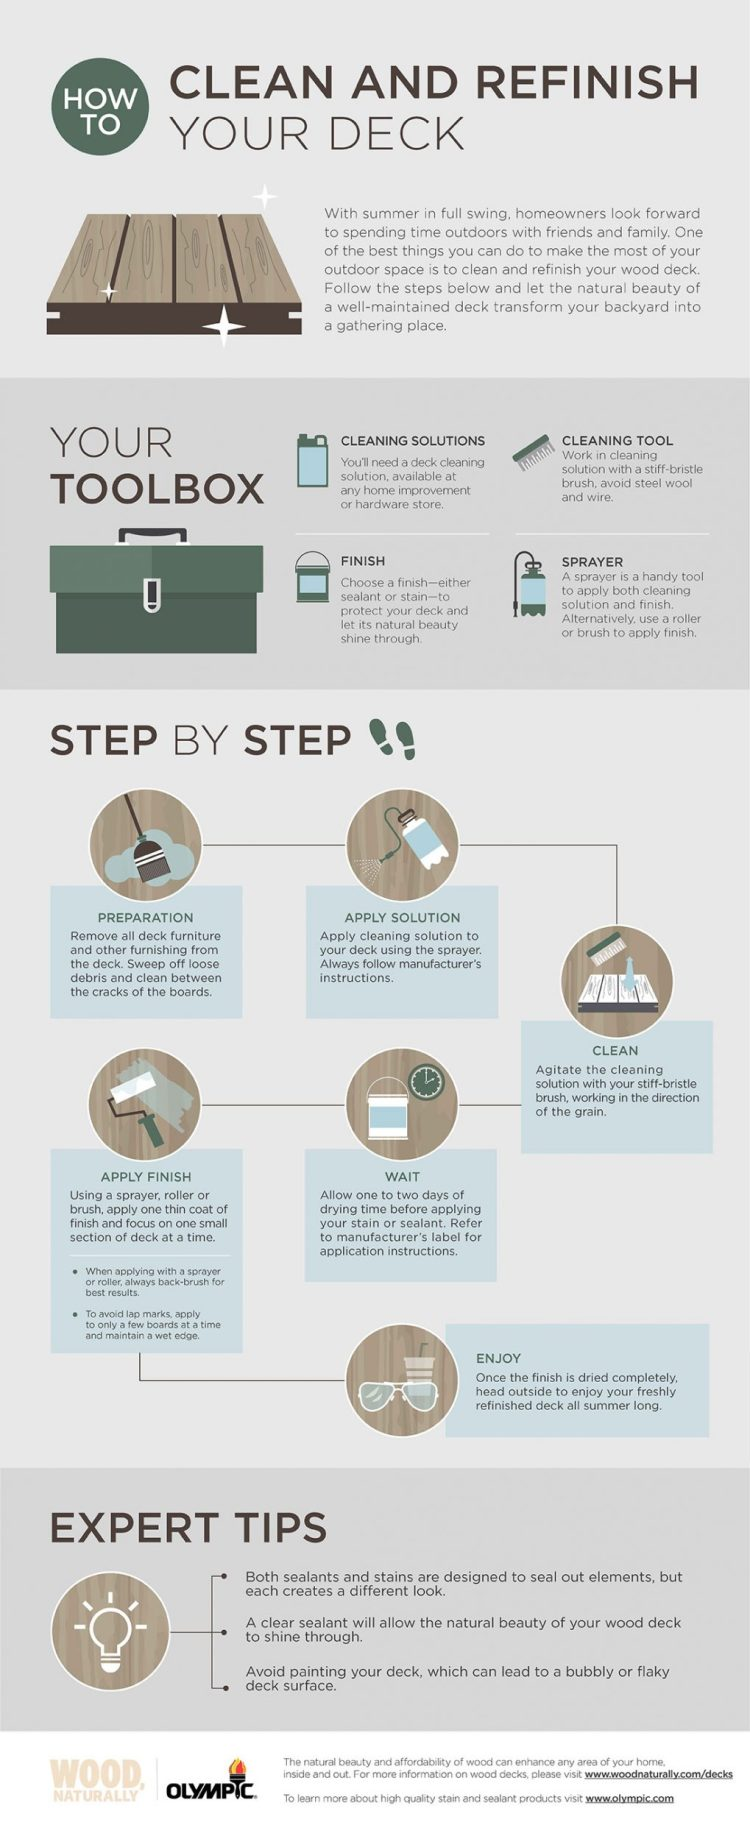 WOOD-NATURALLY-HOW-TO-CLEAN-AND-REFINISH-YOUR-DECK-OLYMPIC-STAIN-SEALANT2